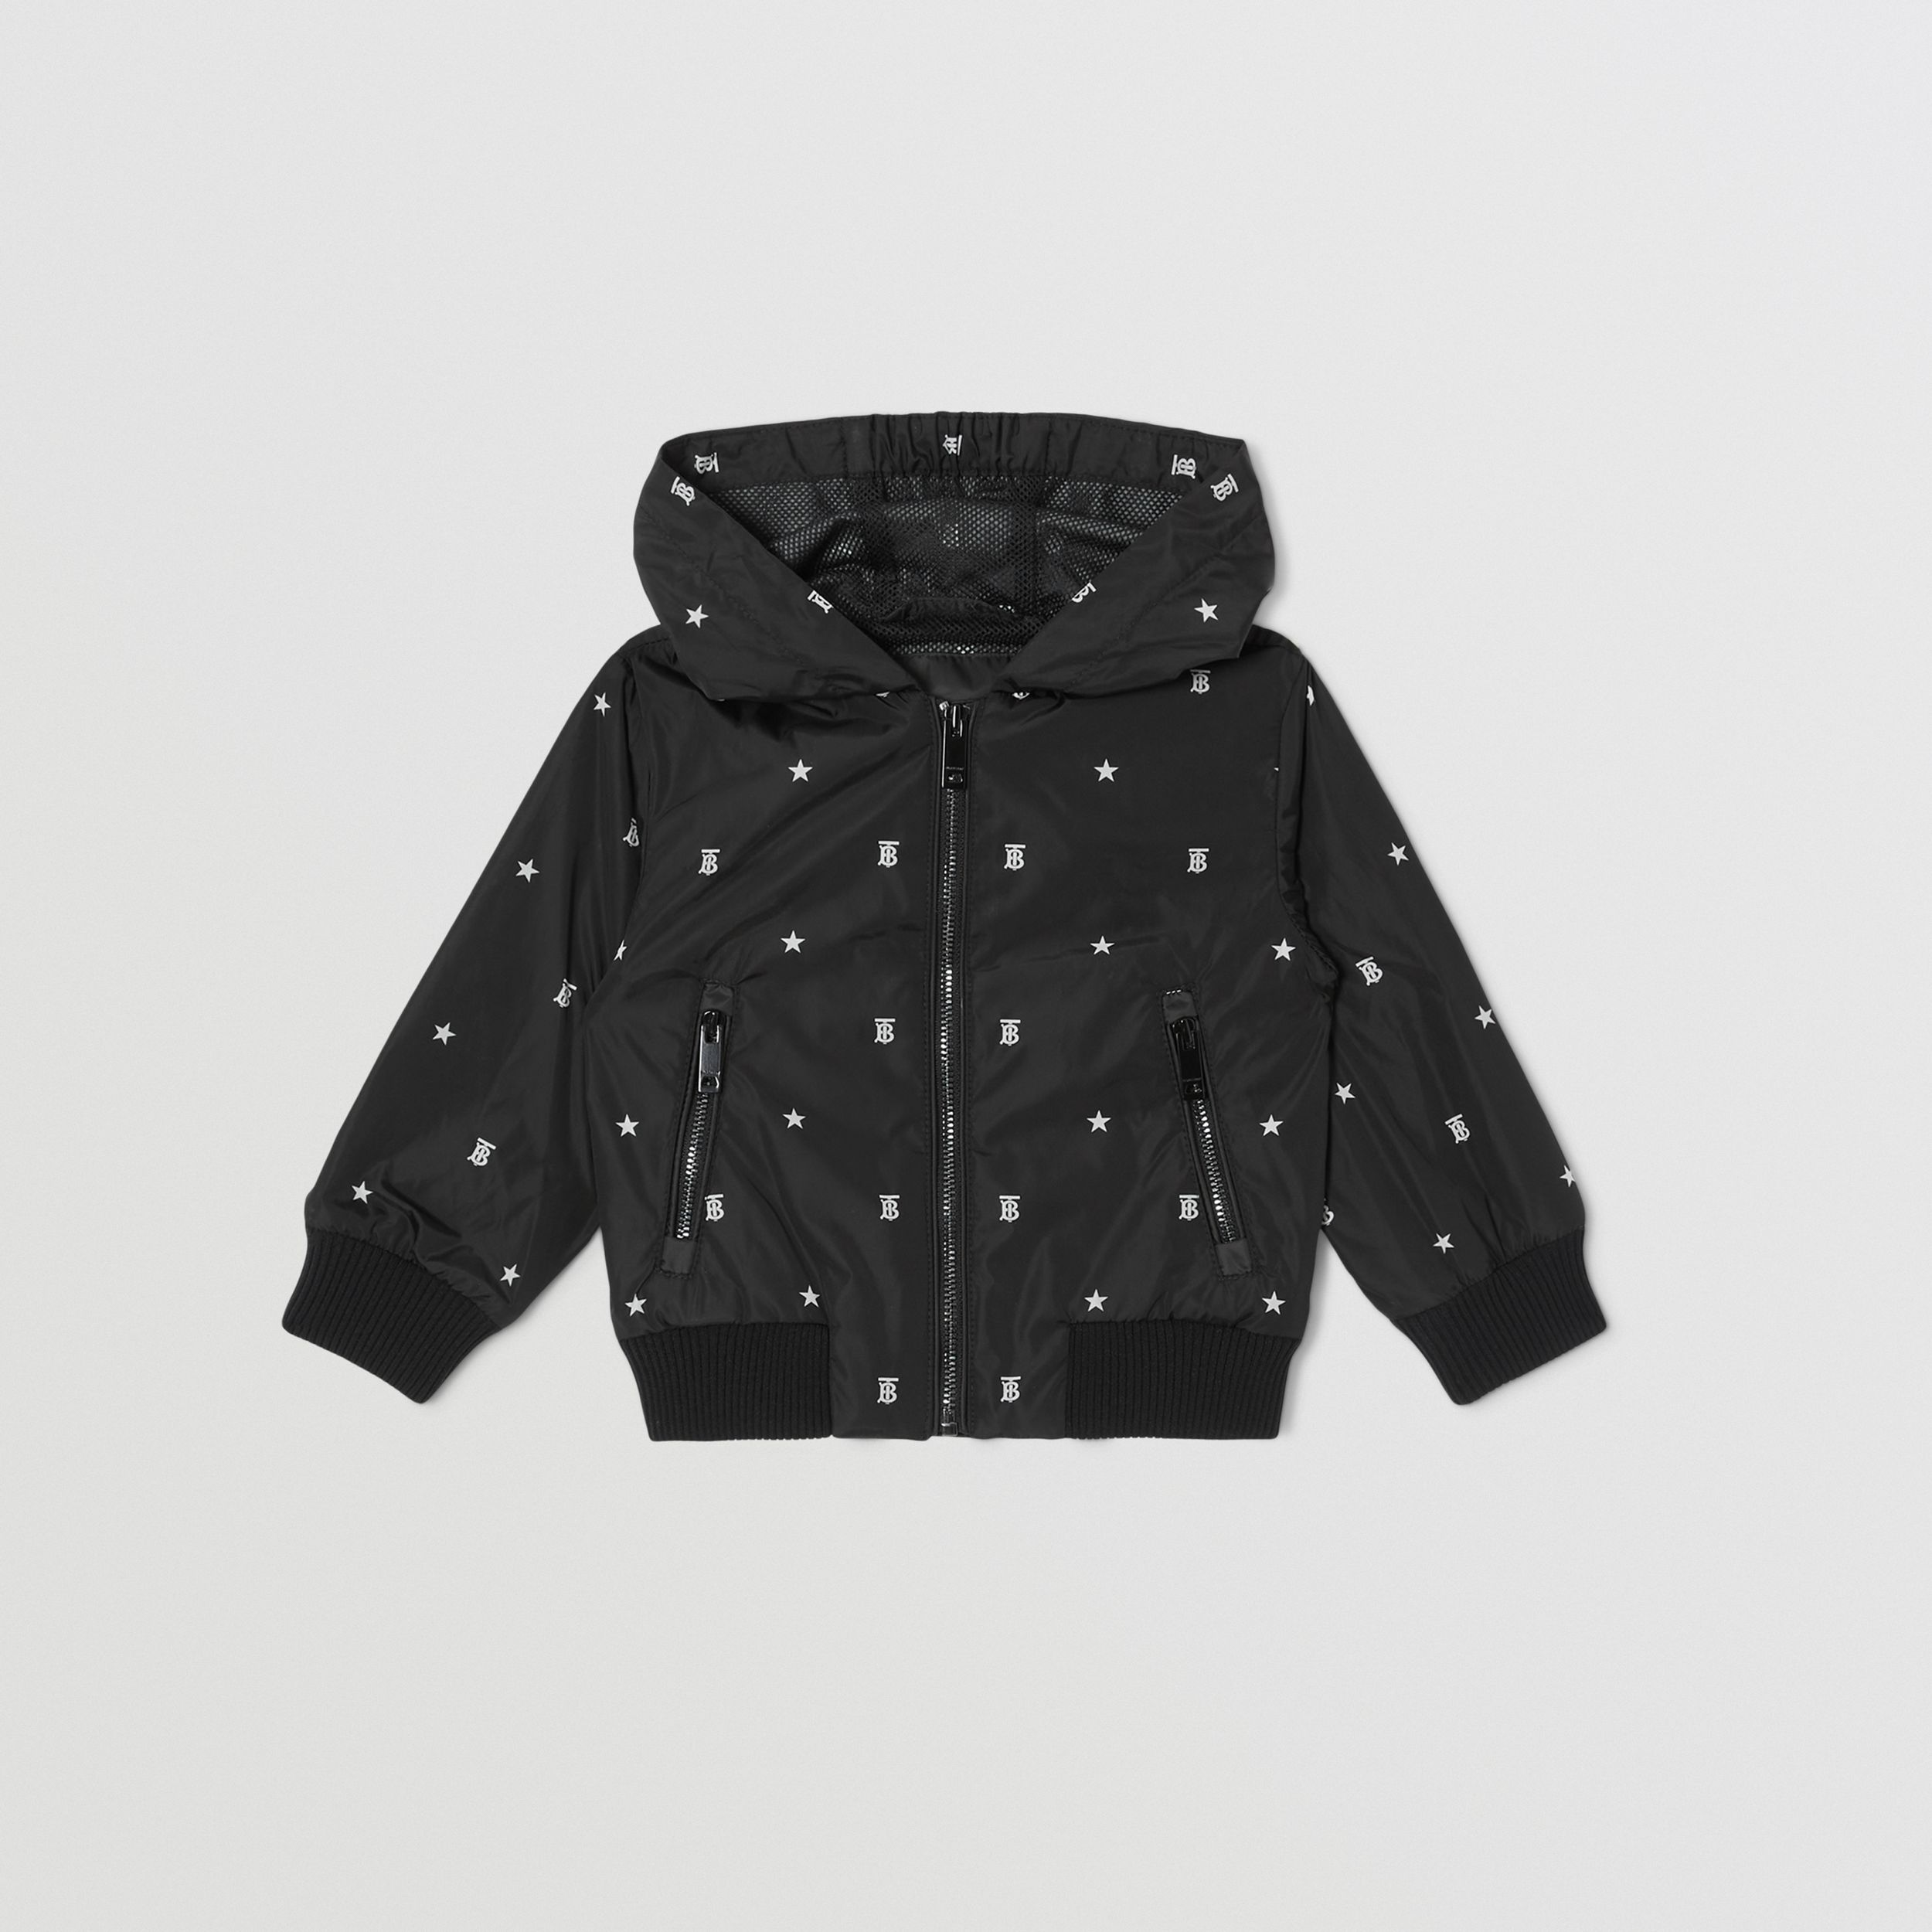 Star and Monogram Motif Lightweight Hooded Jacket in Black - Children | Burberry - 1